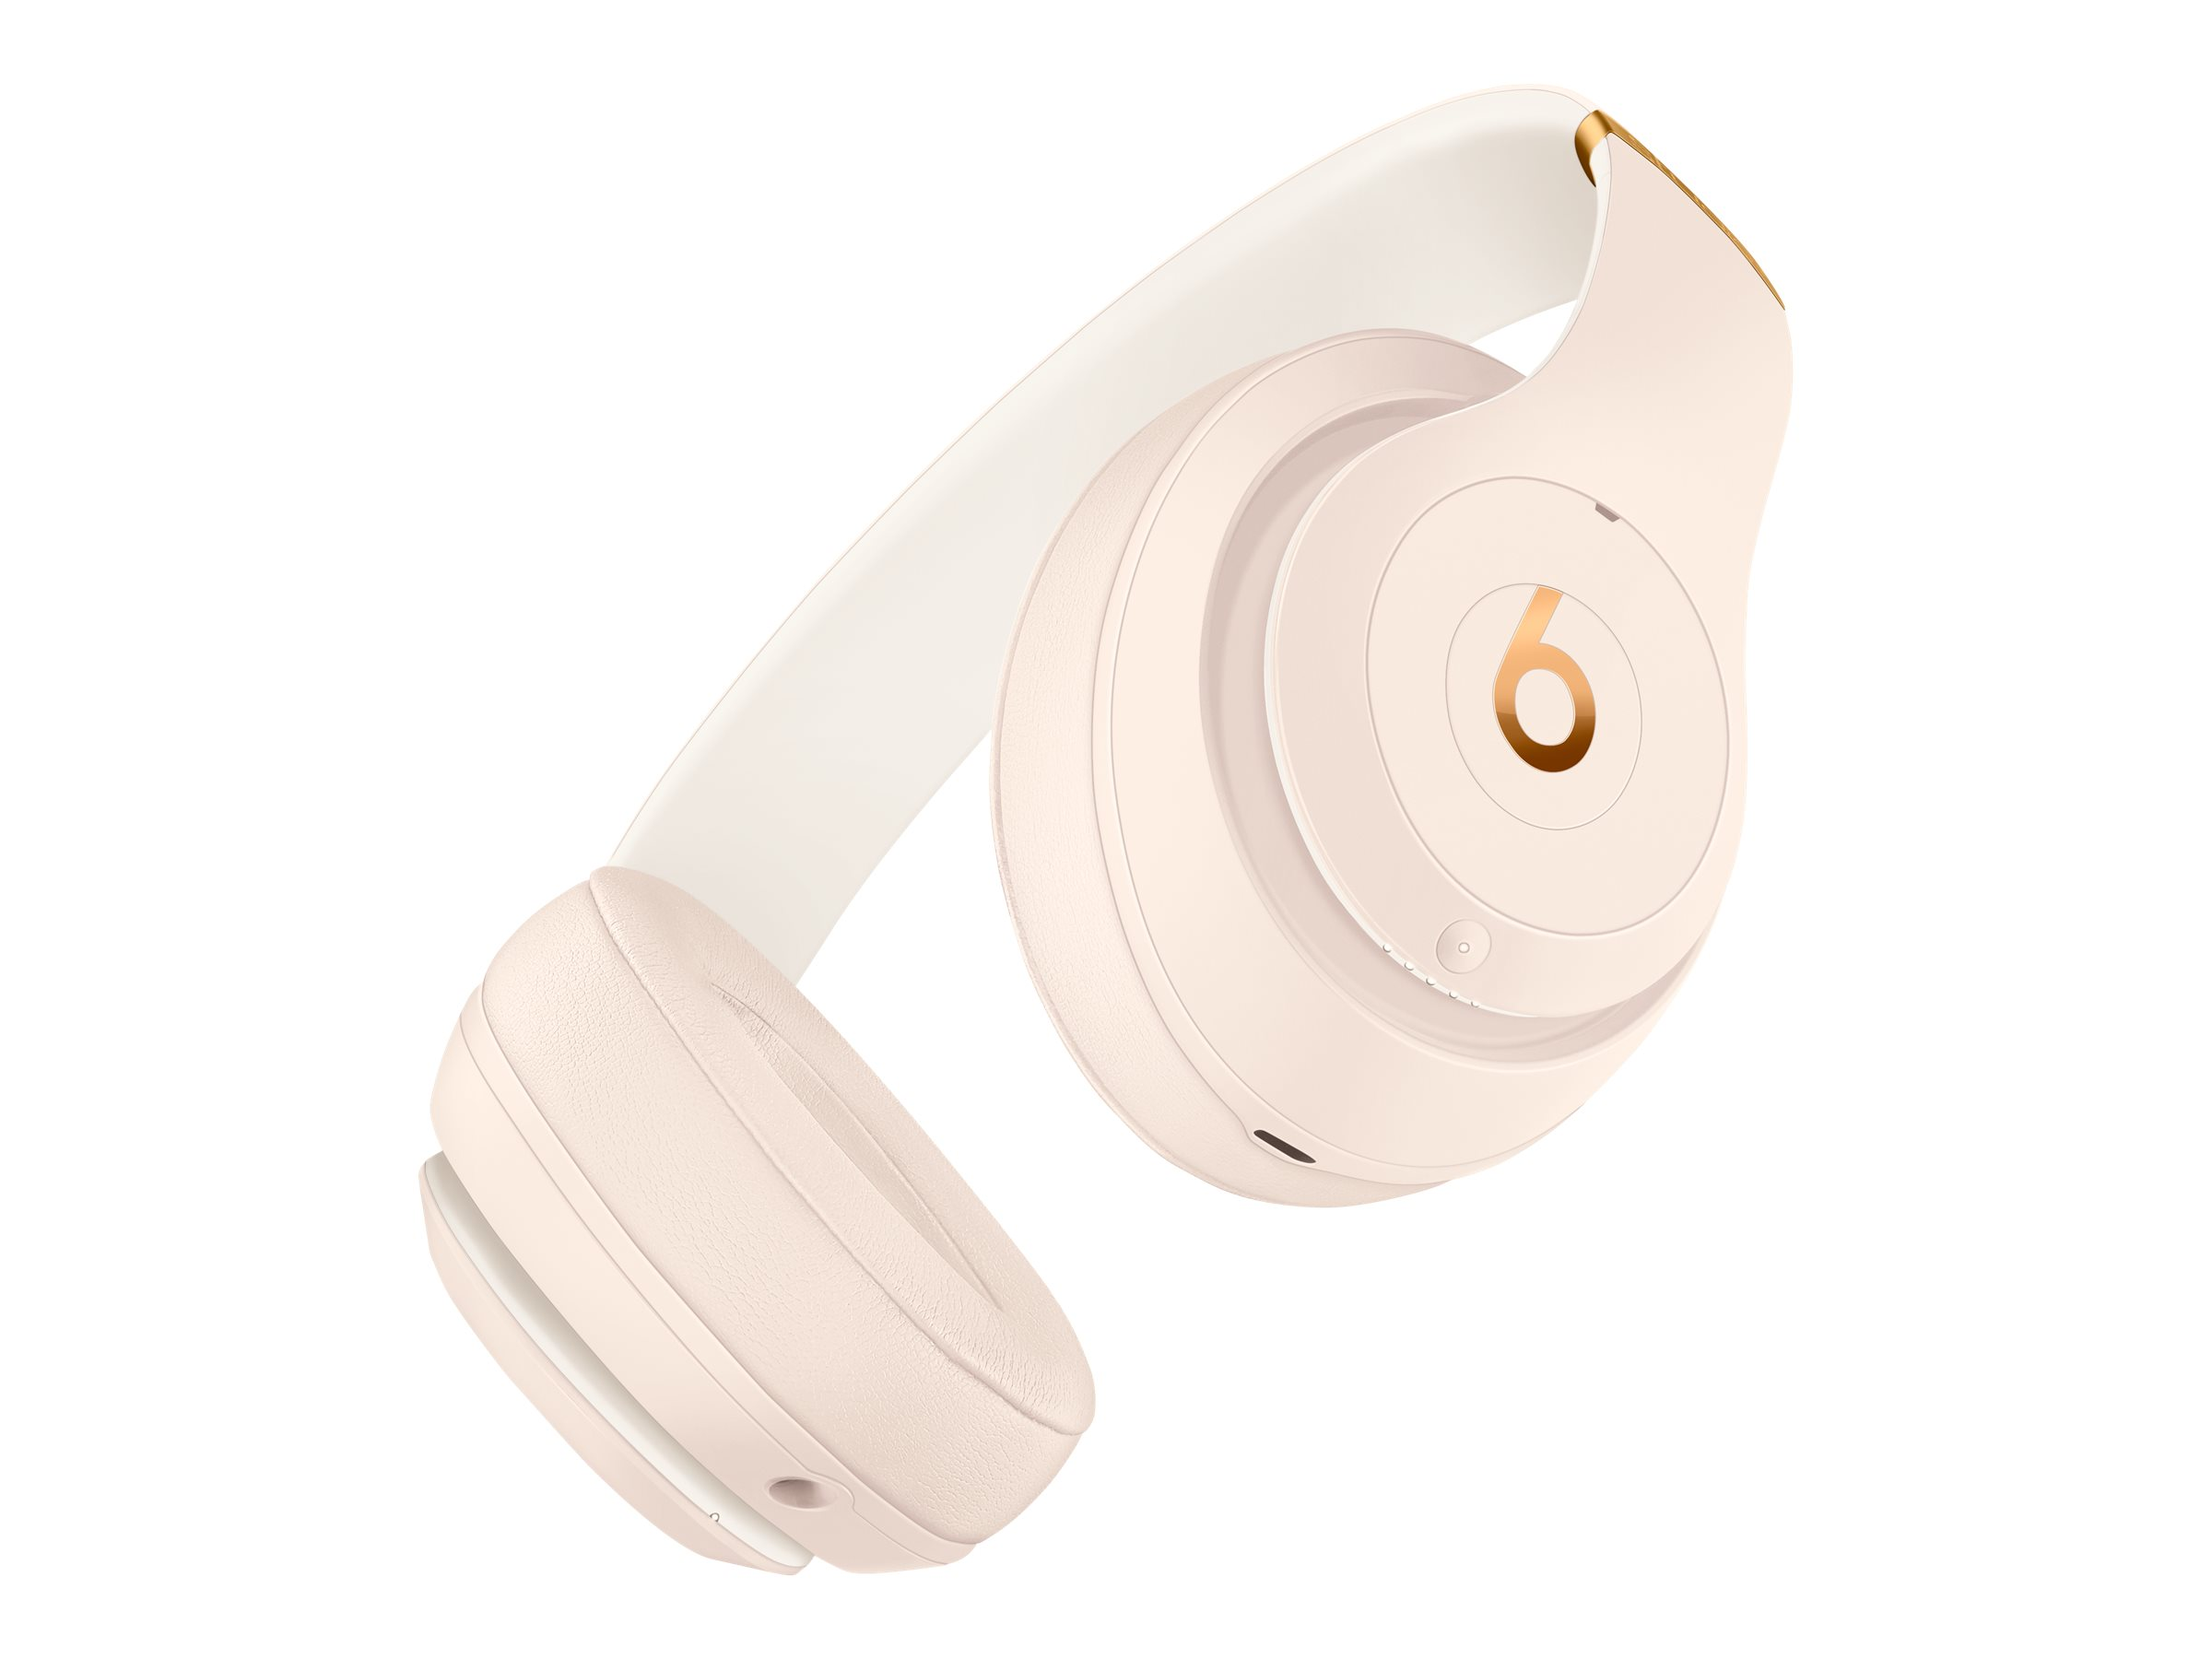 Beats Studio3 Wireless - Headphones with mic - full size - Bluetooth -  wireless - active noise canceling - noise isolating - porcelain rose - for  ... 0a949615fae5a